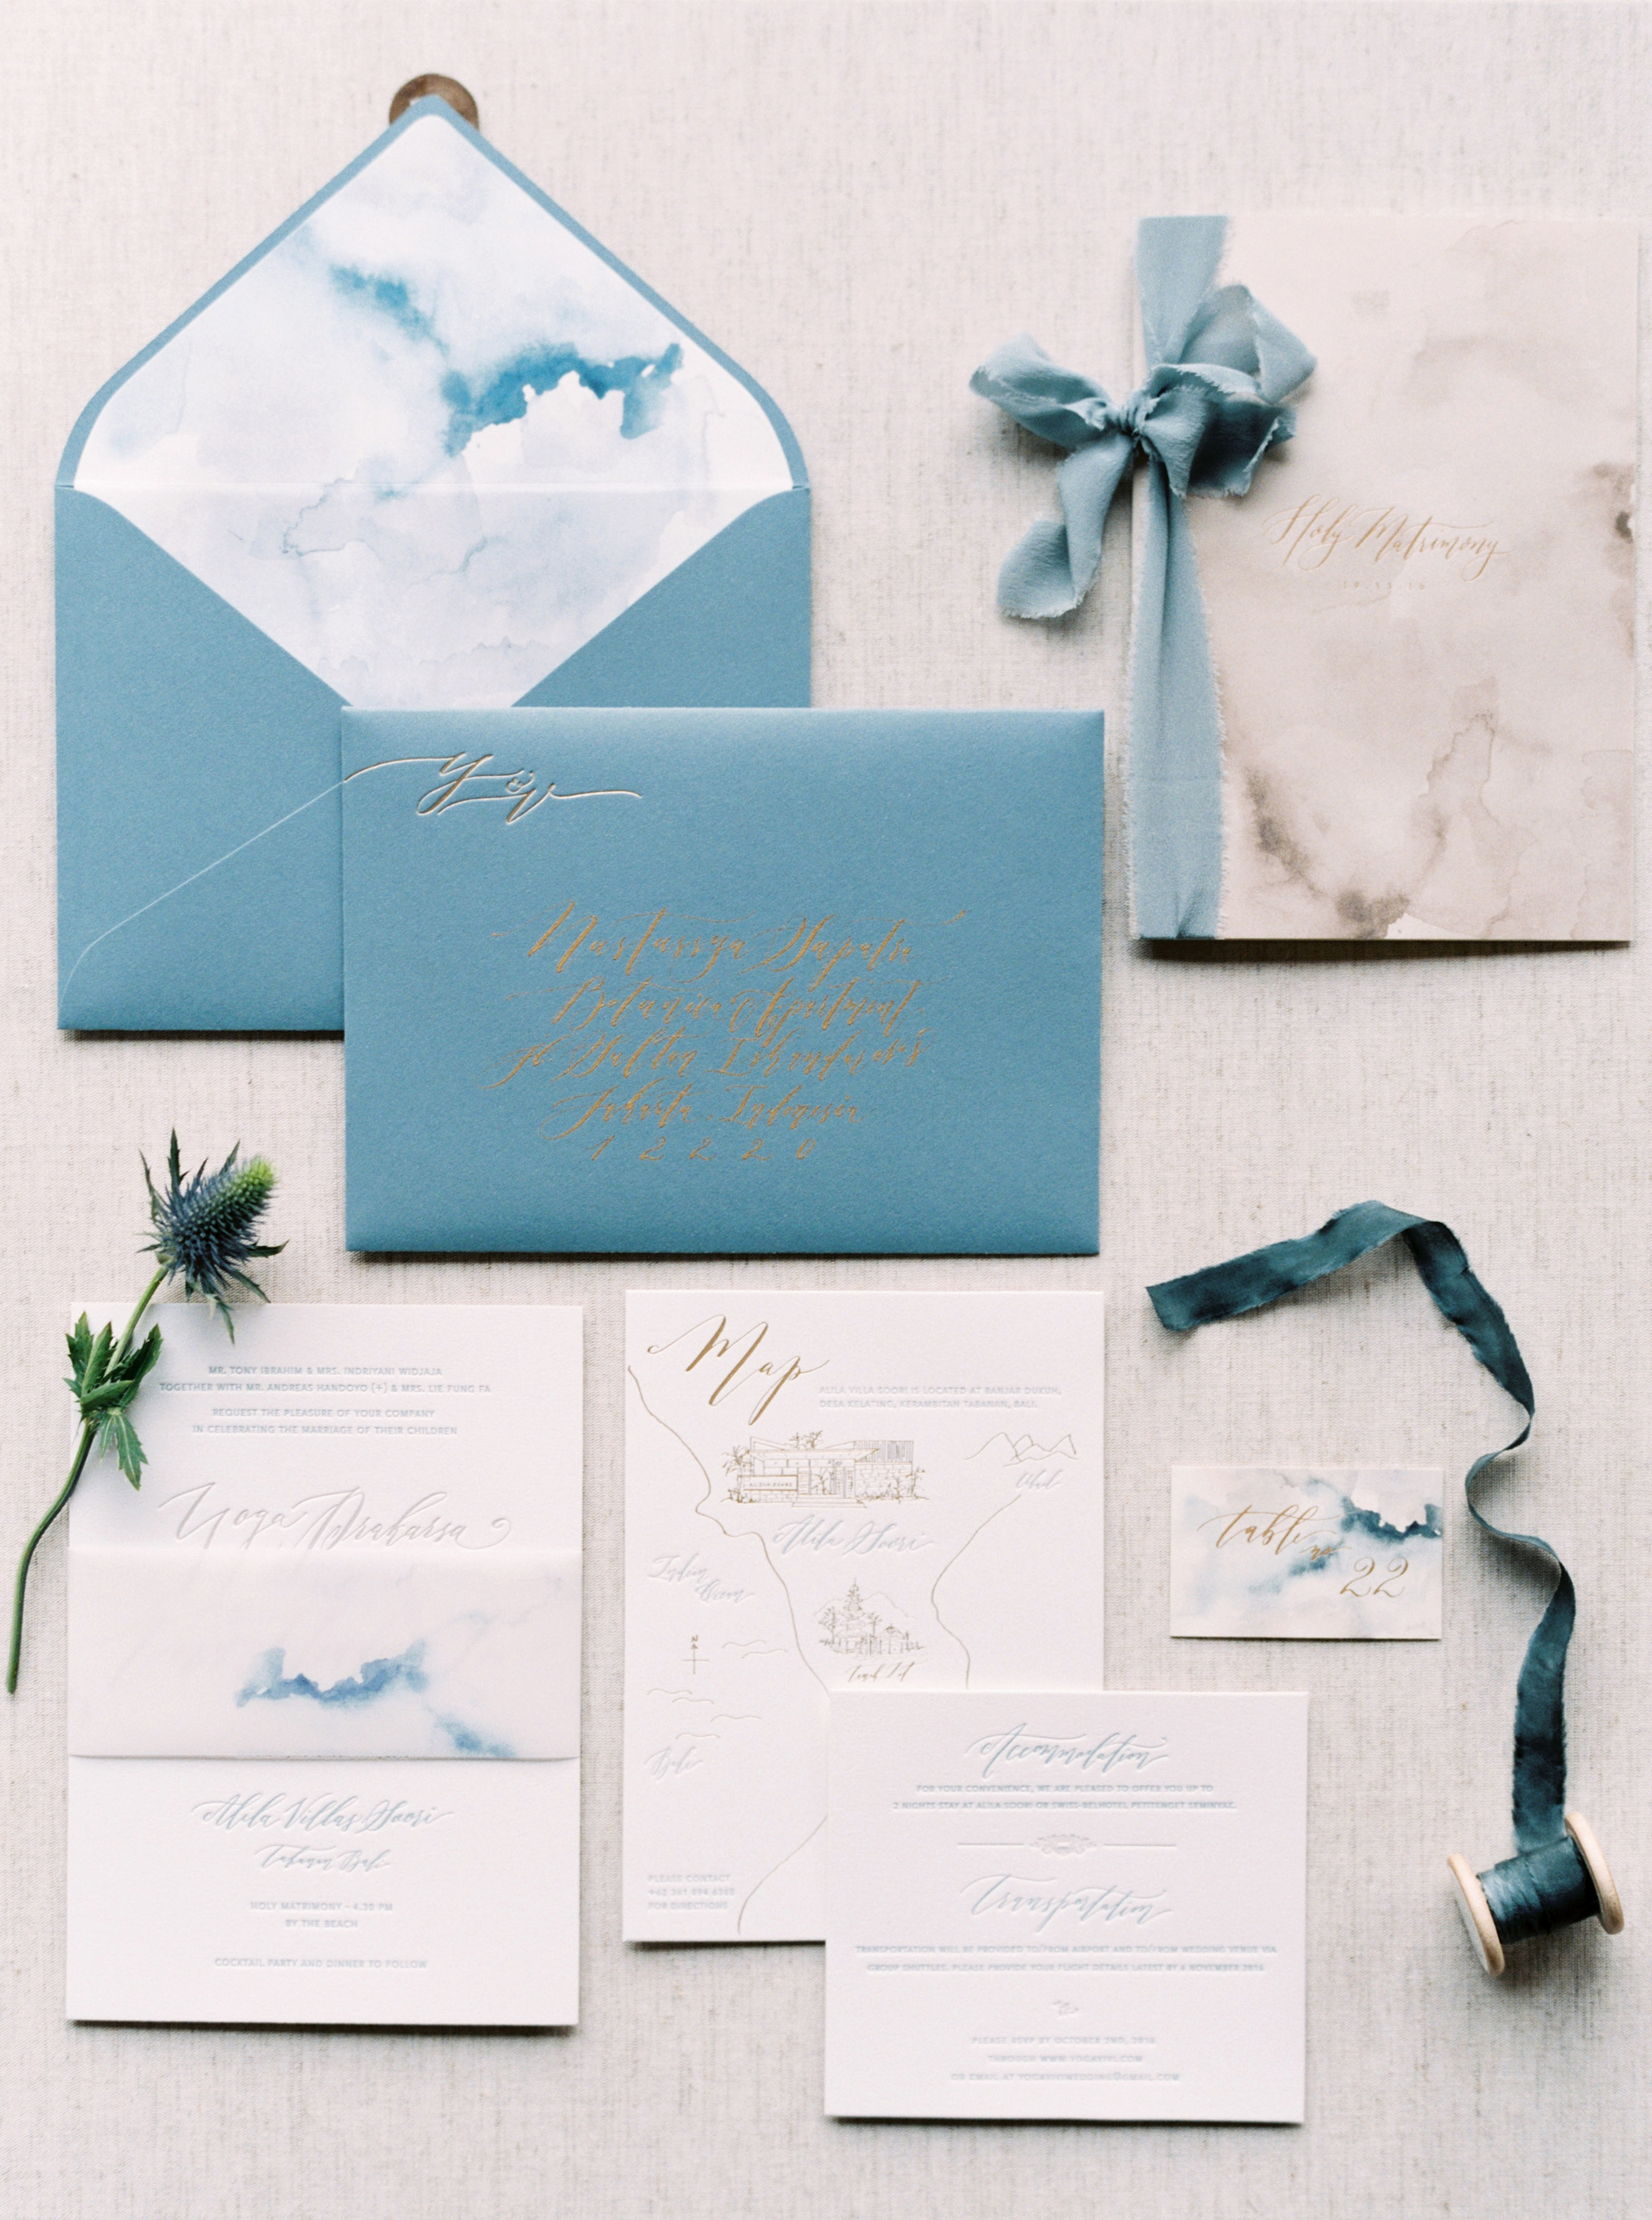 Wedding Invitations with Monogrammed Envelopes